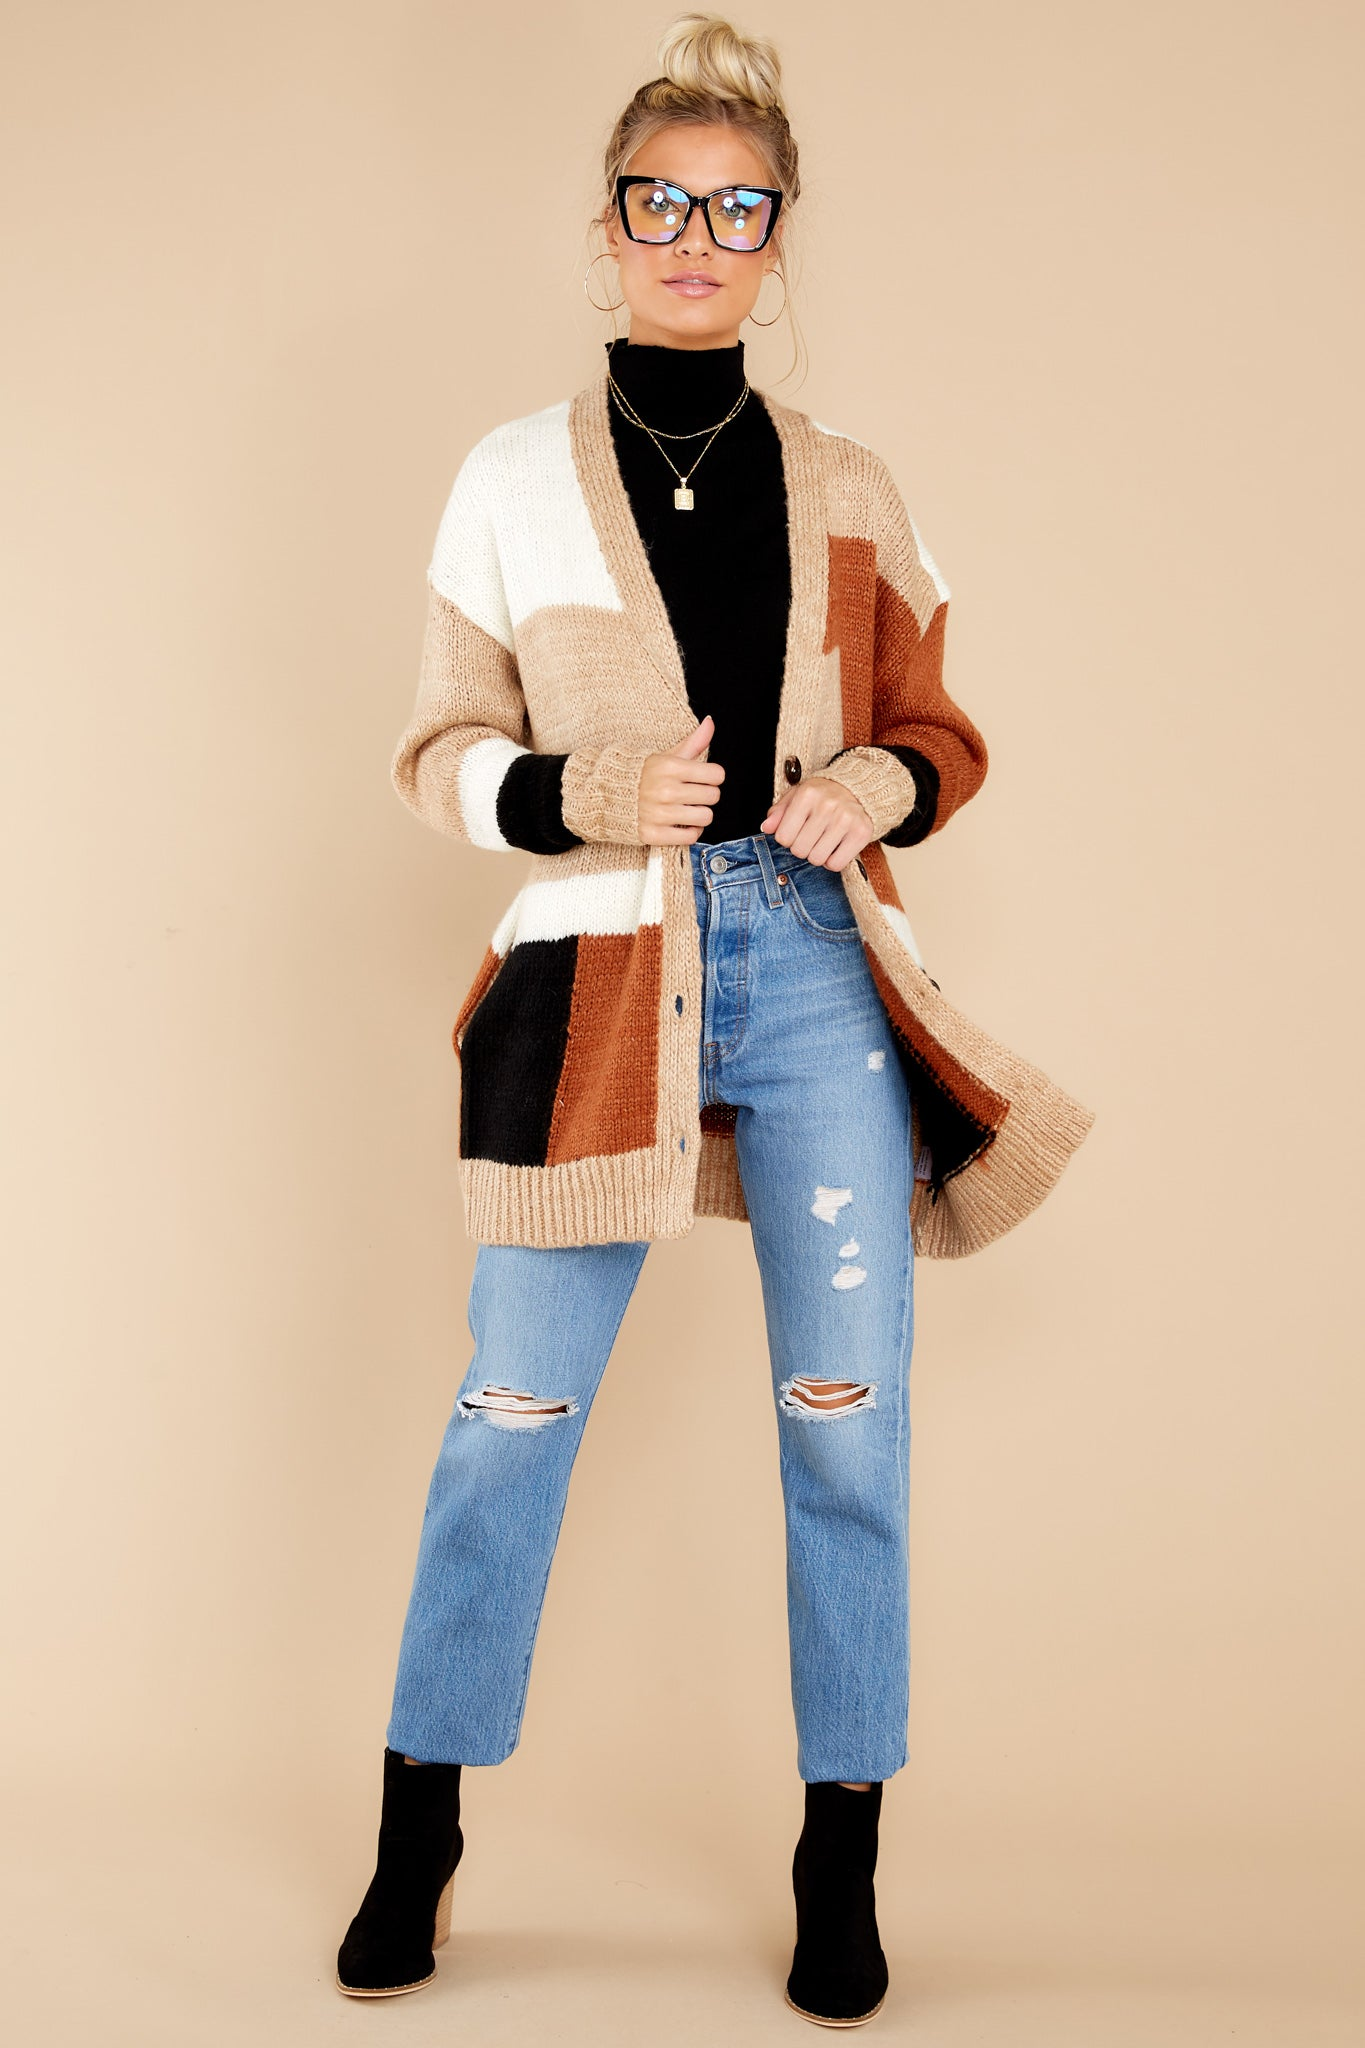 90s Clothing Outfits You Can Buy Now Read Your Mind Camel Colorblock Cardigan Beige $58.00 AT vintagedancer.com